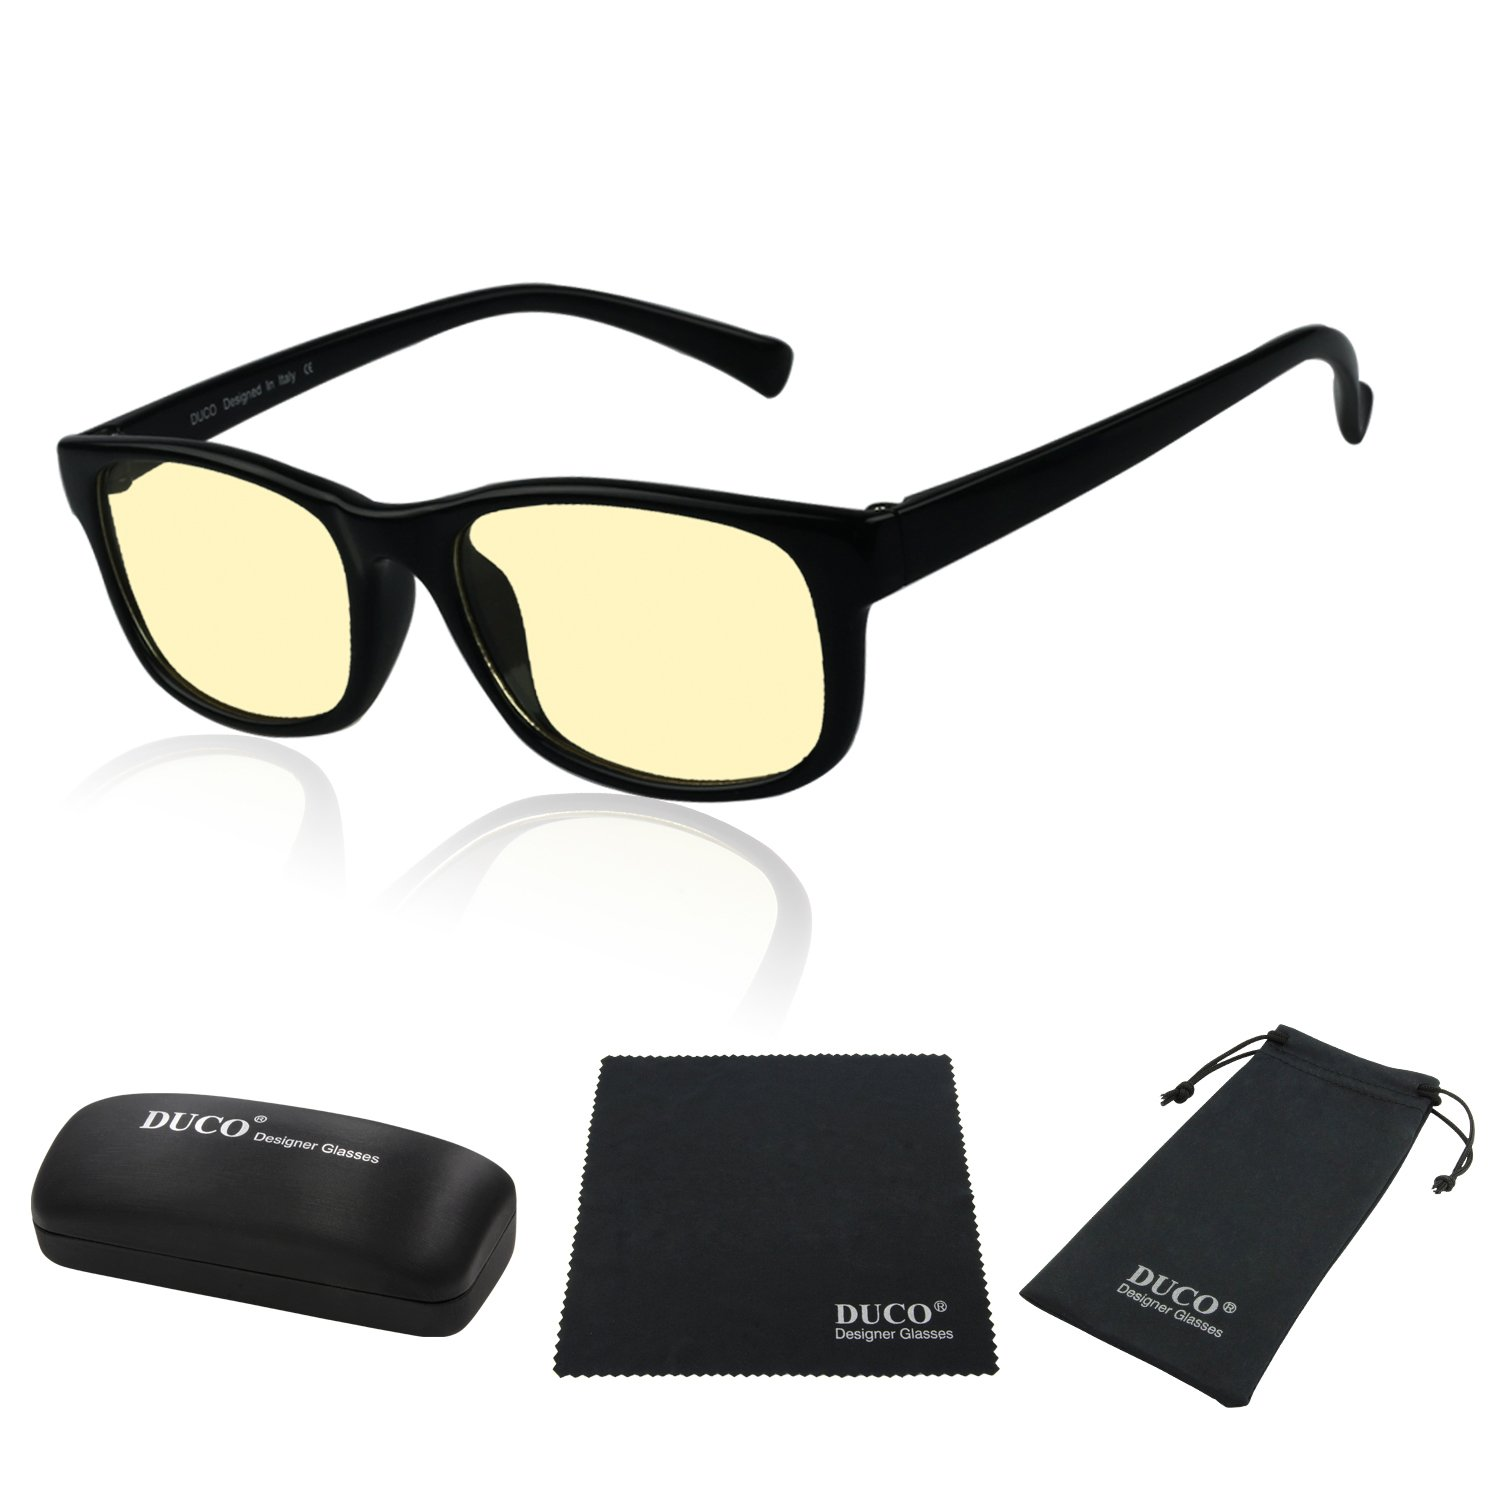 741956a21a Duco Full Rim Ergonomic Video Gaming Glasses Computer Glasses with Anti  Glare Amber Lens Tint 8016